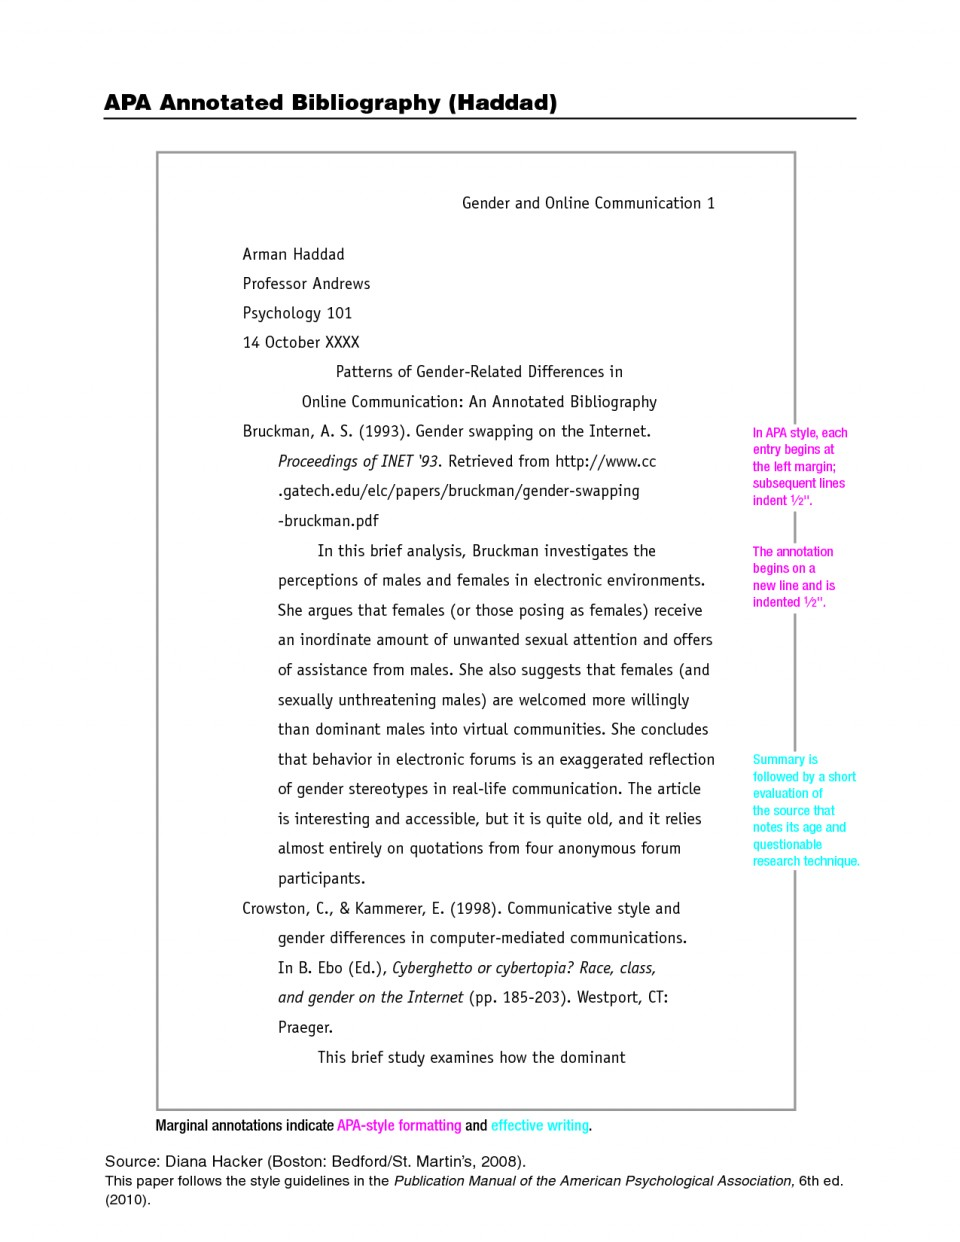 015 Research Paper How To Write Good Fast 1198784868 Unusual A Do You 3 Page On Food 960